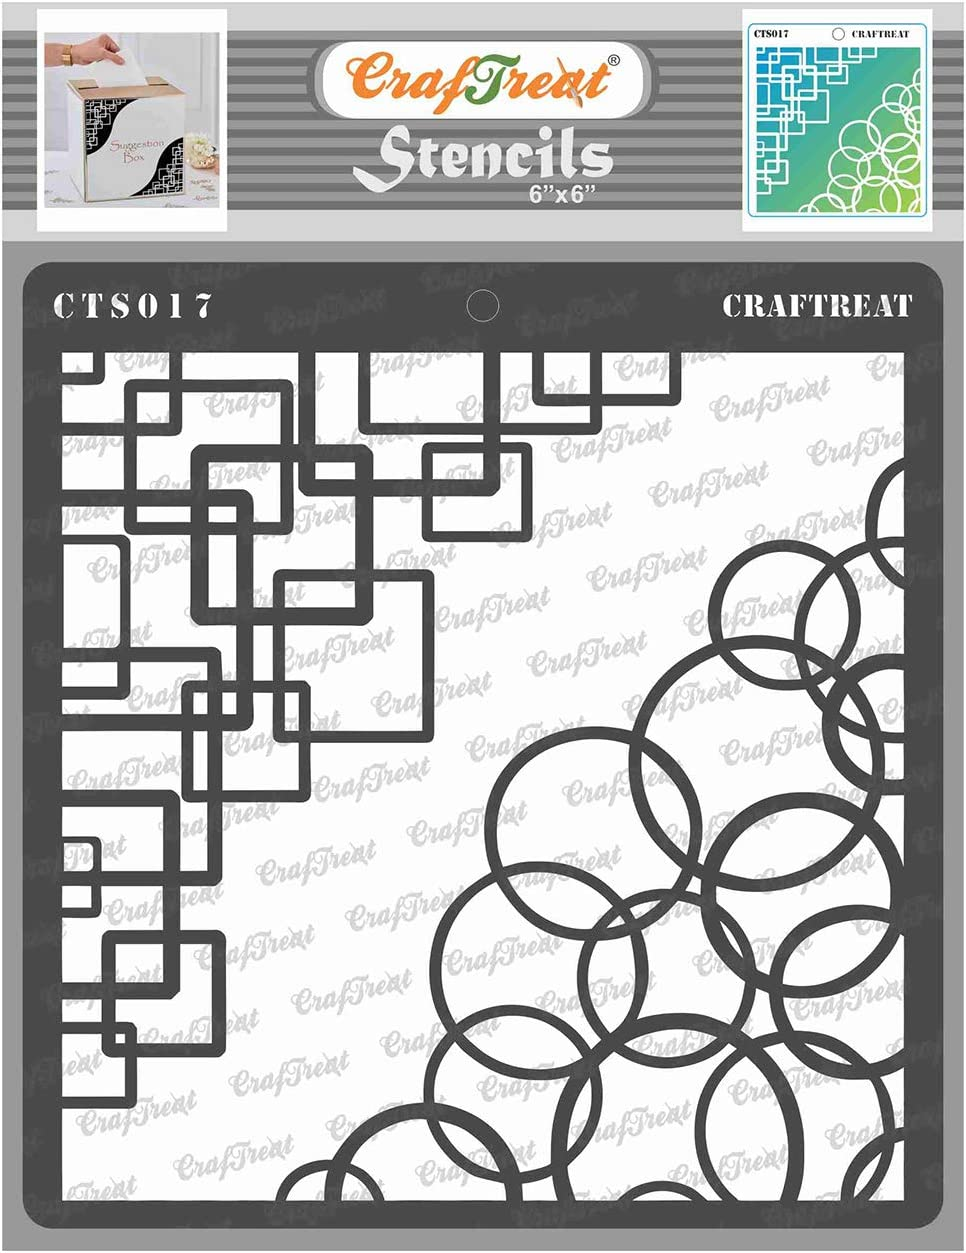 CrafTreat Geometric Corner Stencils for Painting on Wood, Wall, Tile, Canvas, Paper, Fabric and Floor - Retro Corner Stencil - 6x6 Inches - Reusable DIY Art and Craft Stencils